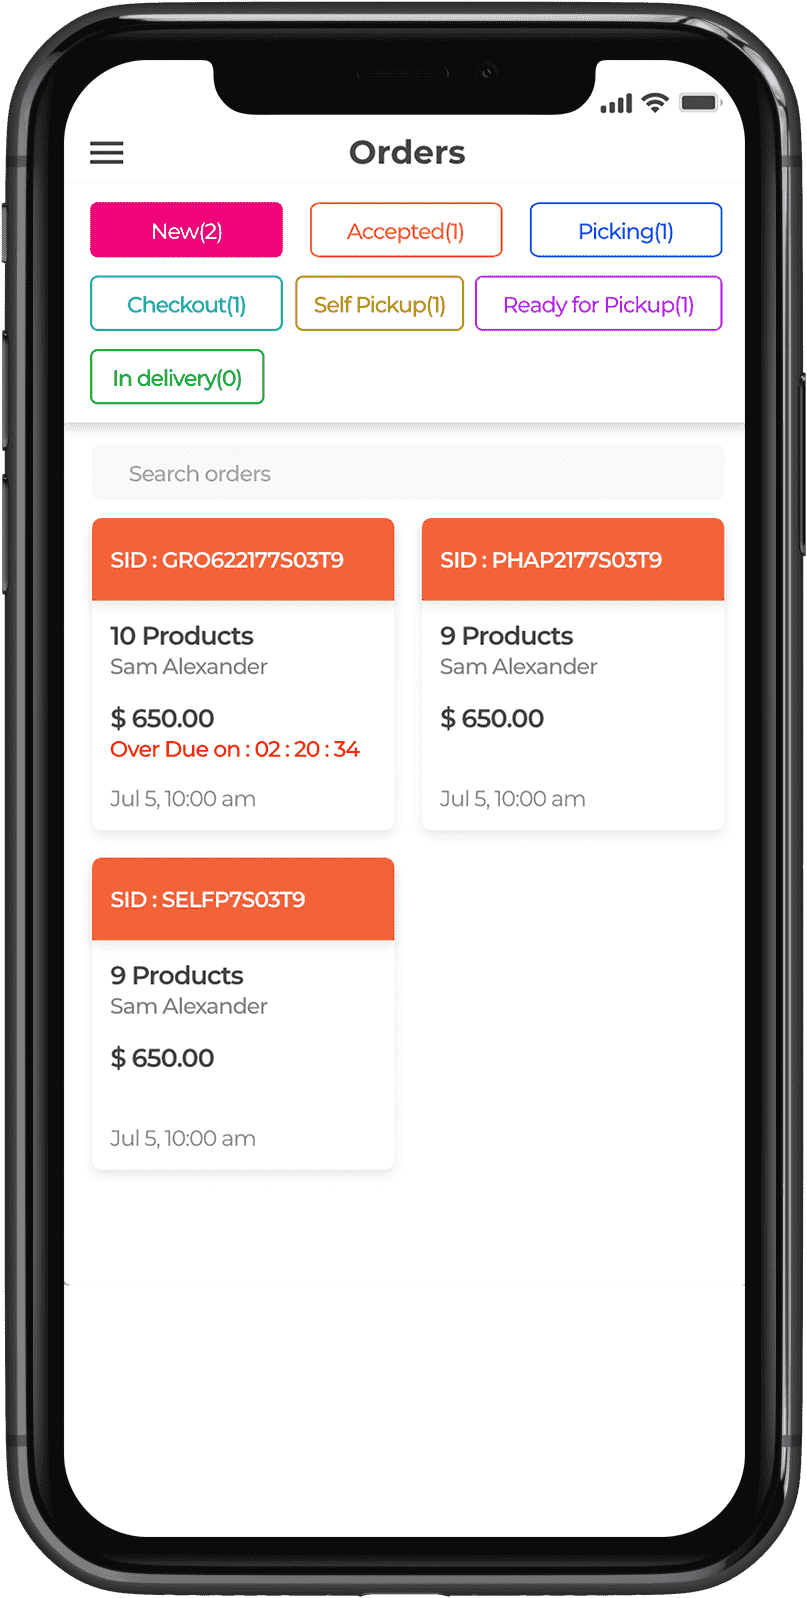 new-order-tab-in-liquor-delivery-picker-app.png